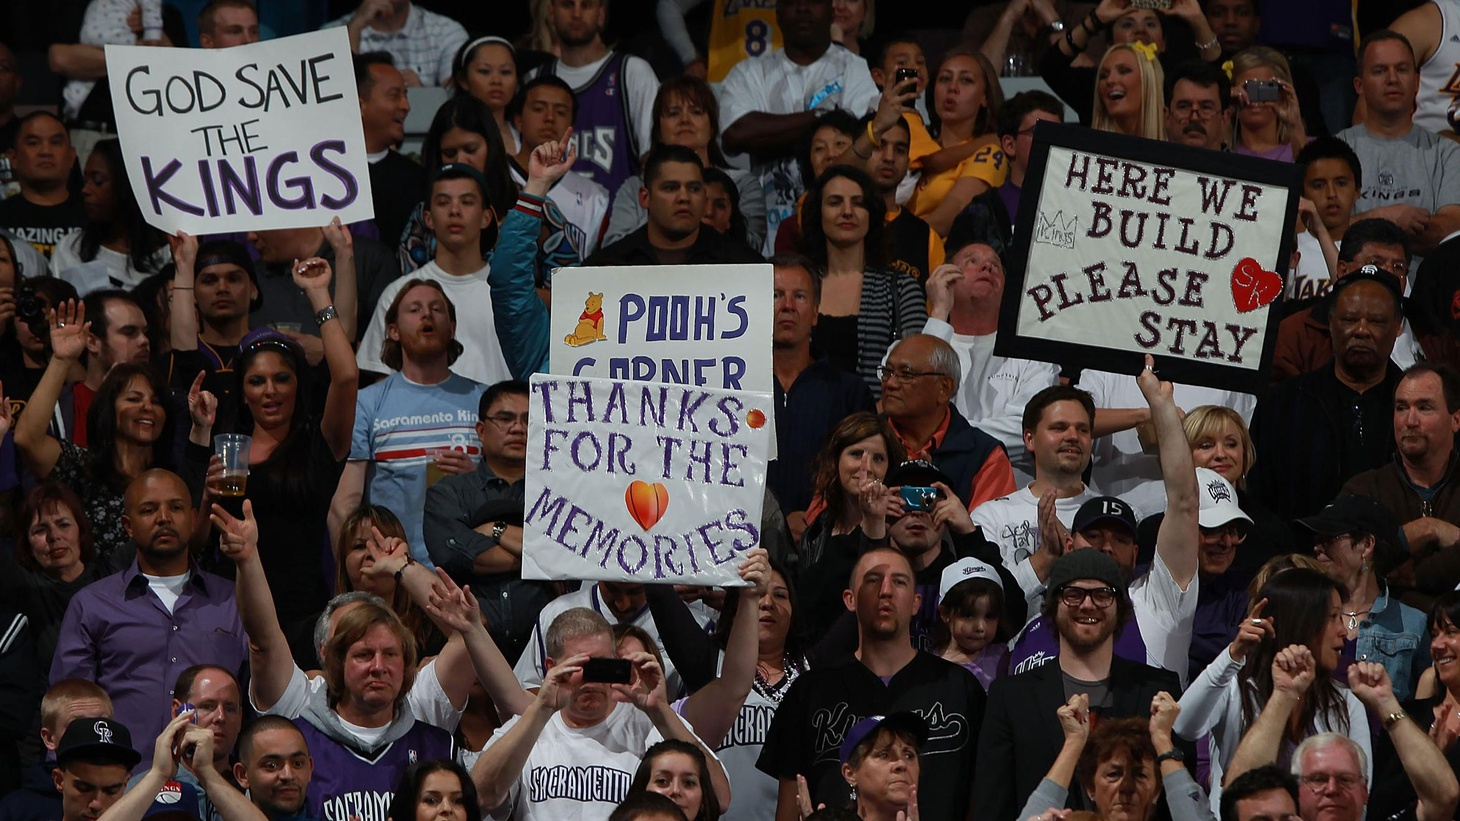 Anaheim has approved a $75 million bond issue to get a third